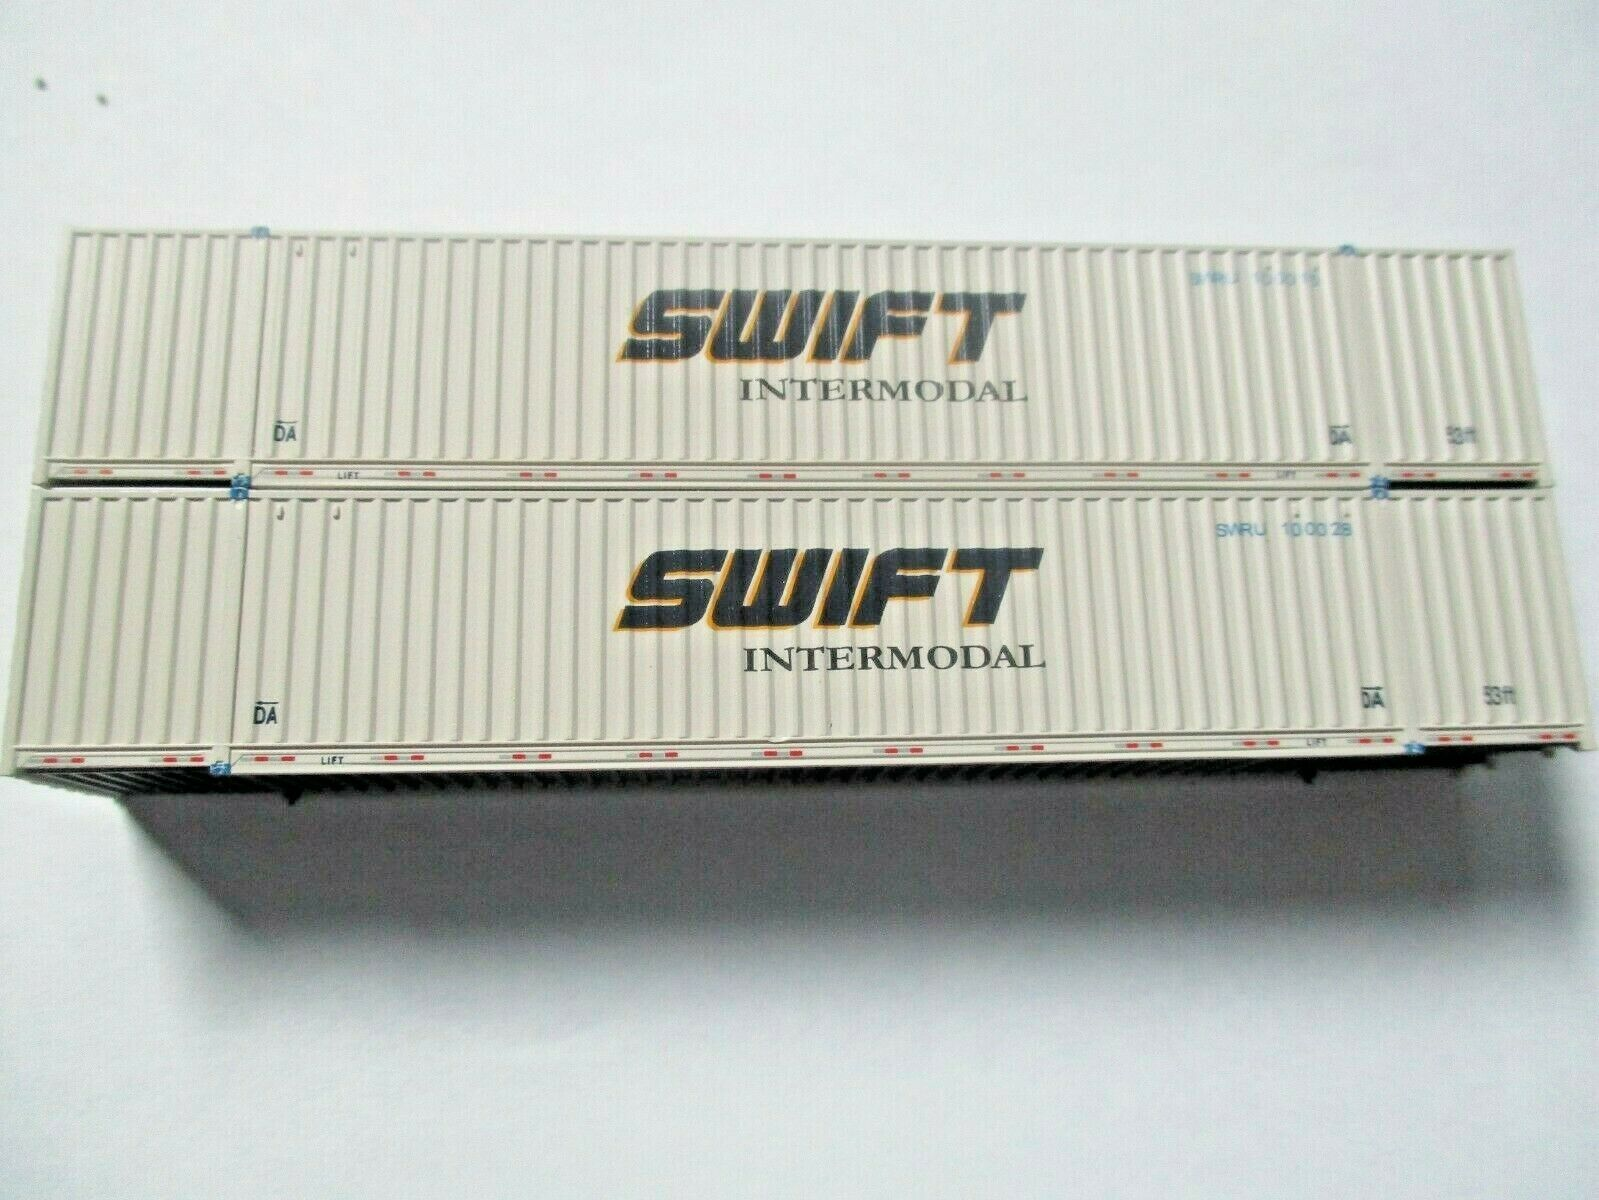 Jacksonville Terminal Company # 535023 Swift Intermodal (faded)  53' Container N